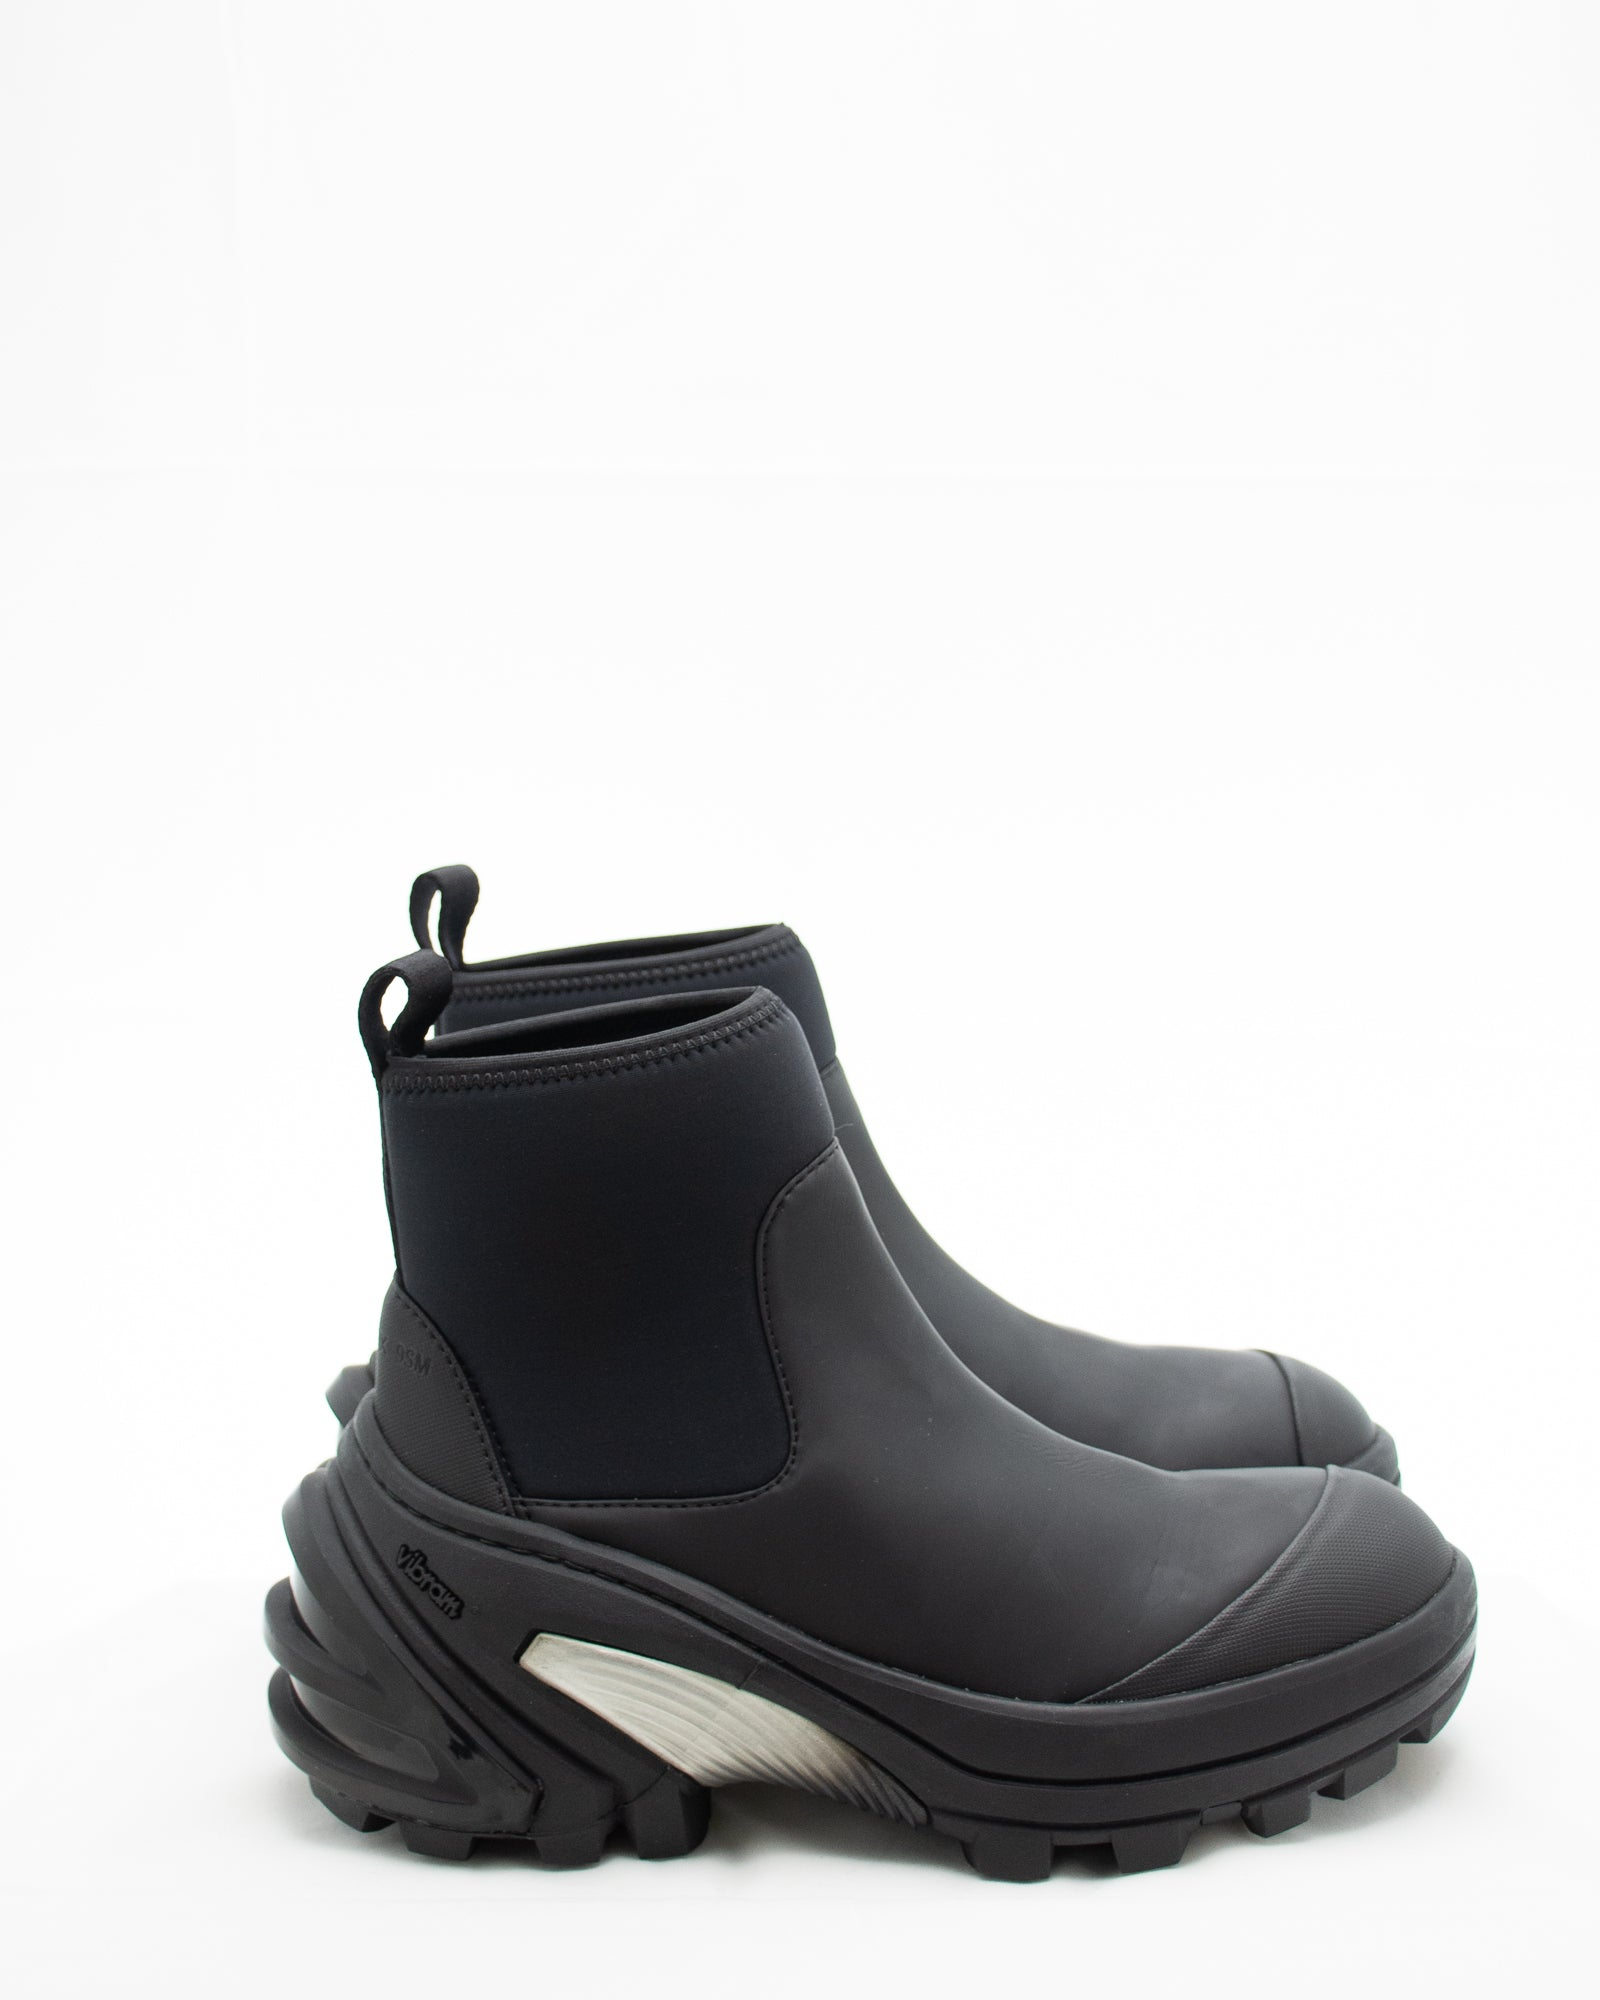 ALYX Mid Boot With Vibram Sole